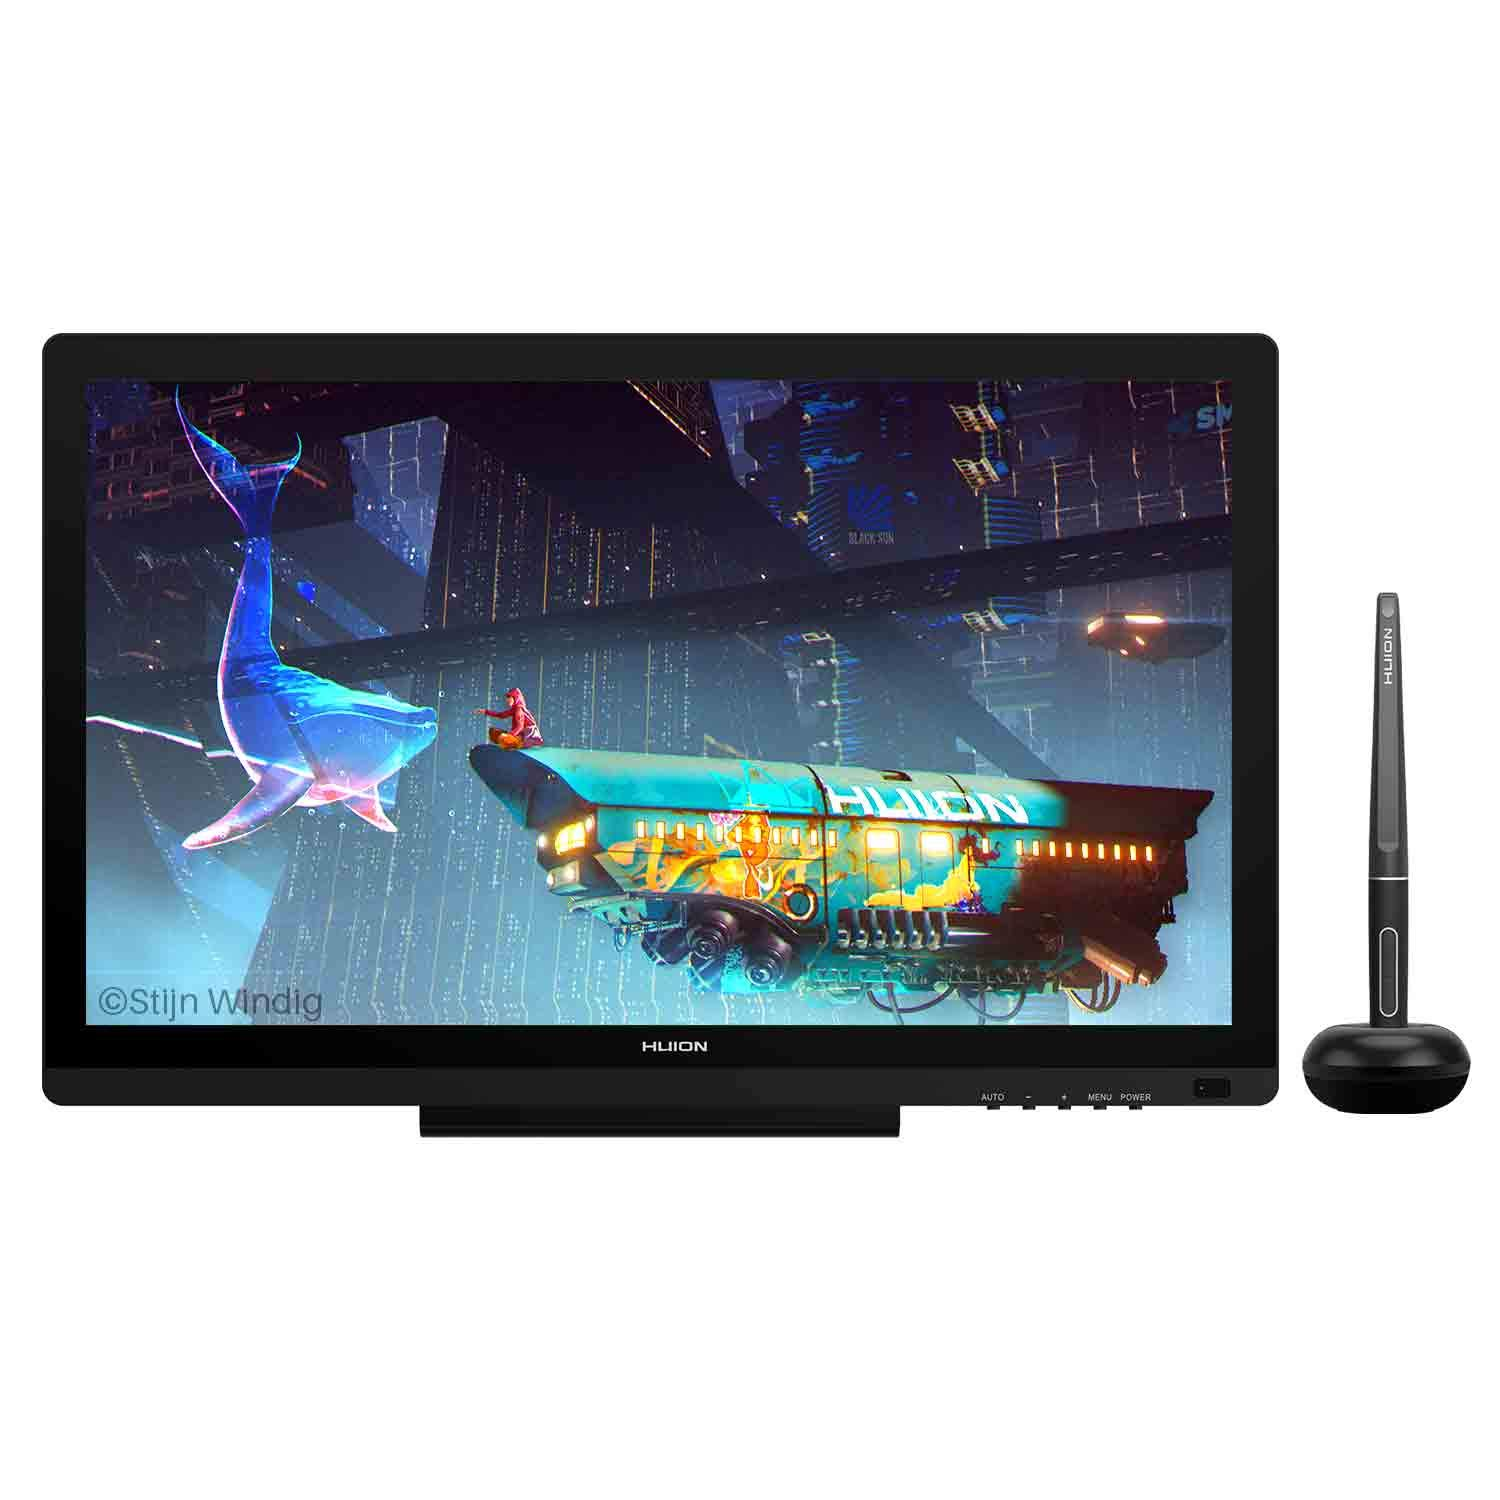 HUION KAMVAS 20 Pen Display Drawing Graphics Monitor with 19.5 Inches Battery-Free Stylus 8192 Pen Pressure 120% sRGB